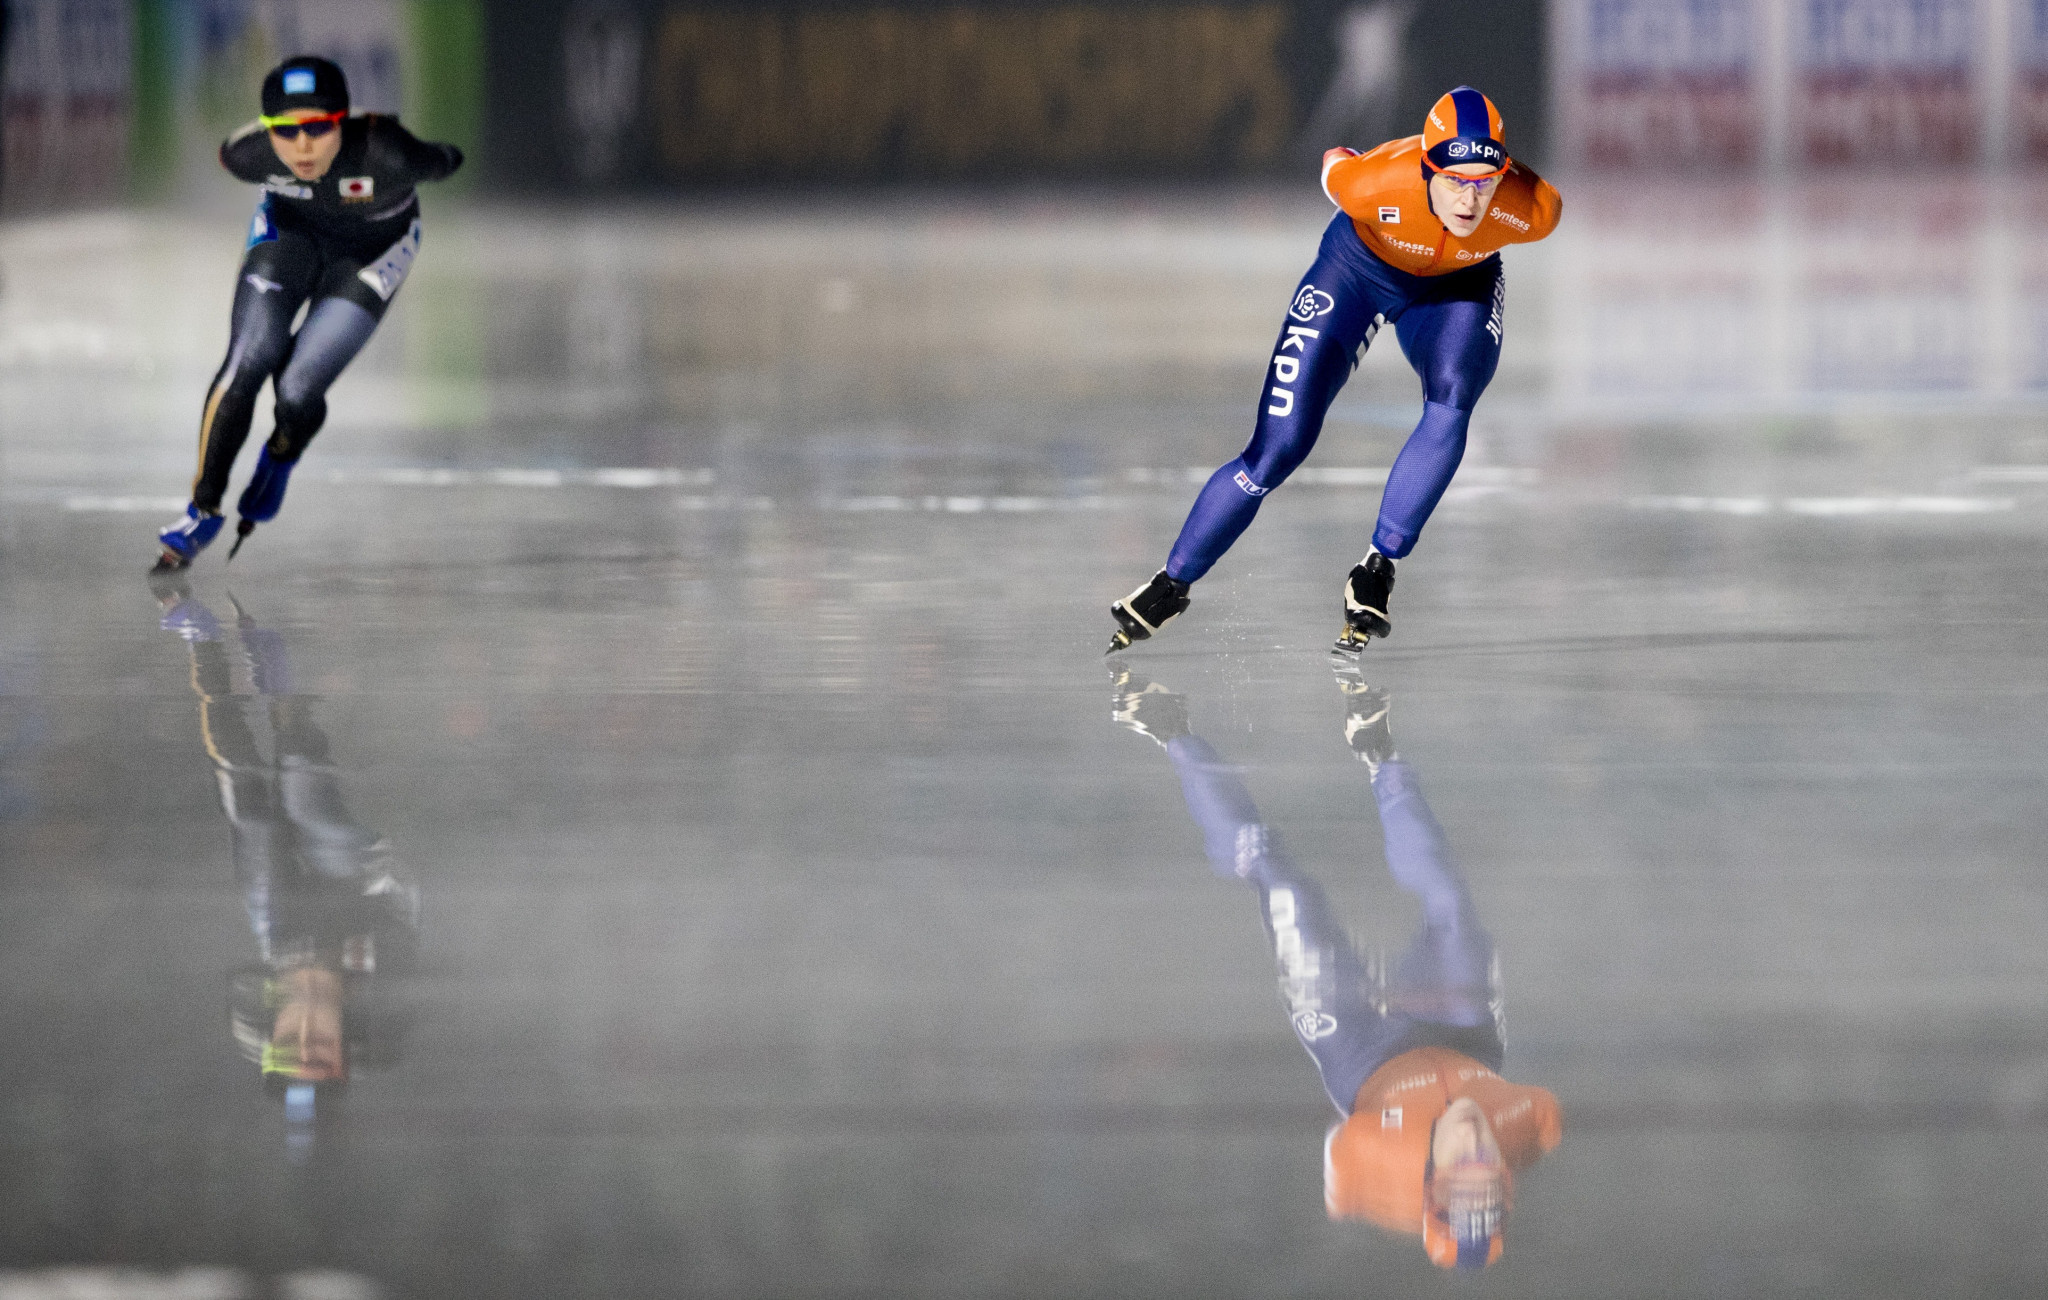 Miho Takagi, left, beat her Dutch rival  Ireen Wüst, right, to become the first Japanese or Asian to win the ISU World Allround Speed Skating Championships ©Getty Images